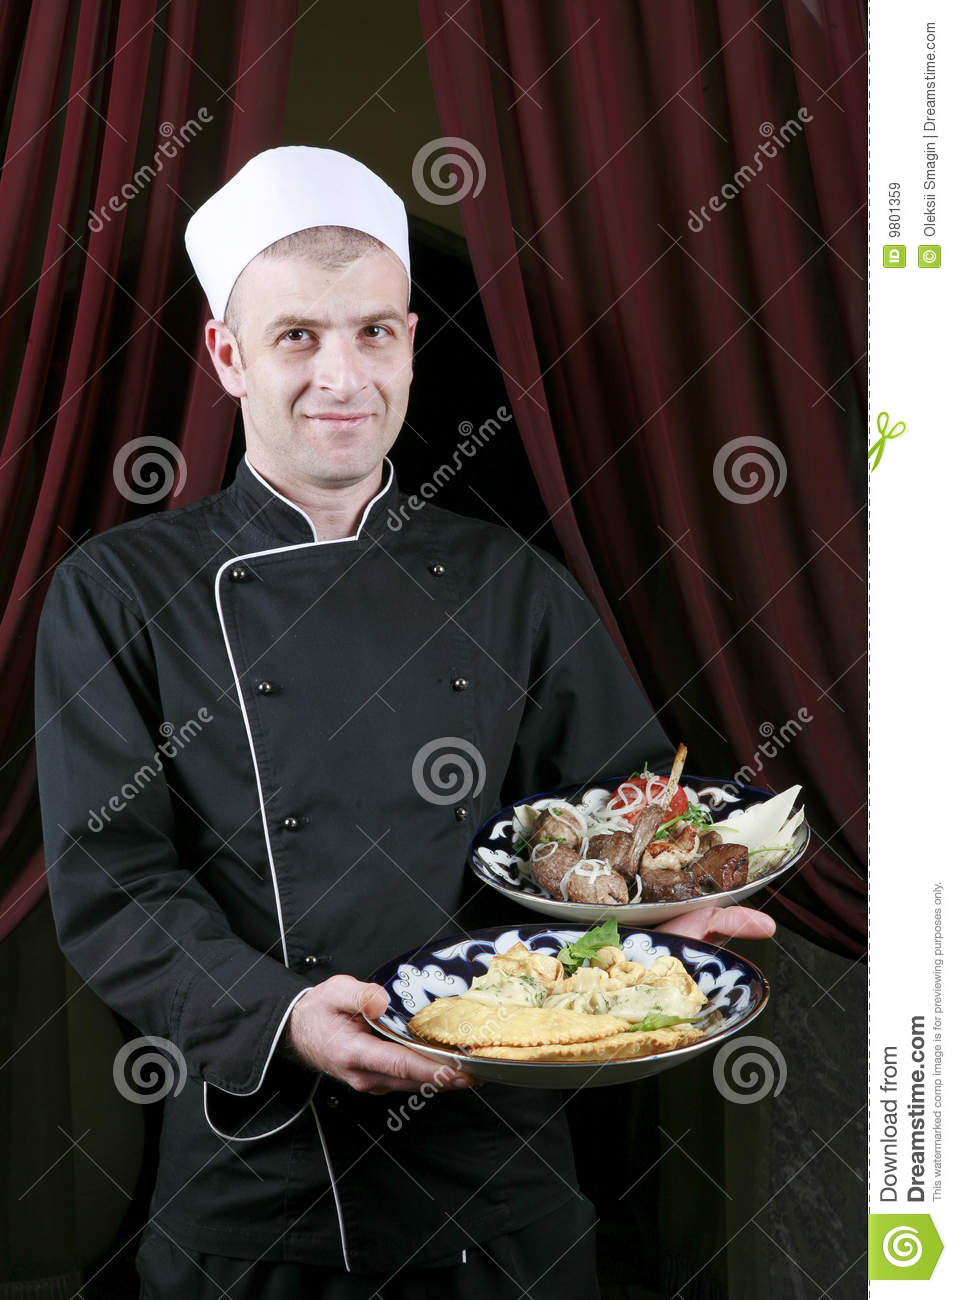 Kitchen Present Portrait Mid Adult Male Chef In Kitchen Present Royalty Free Stock